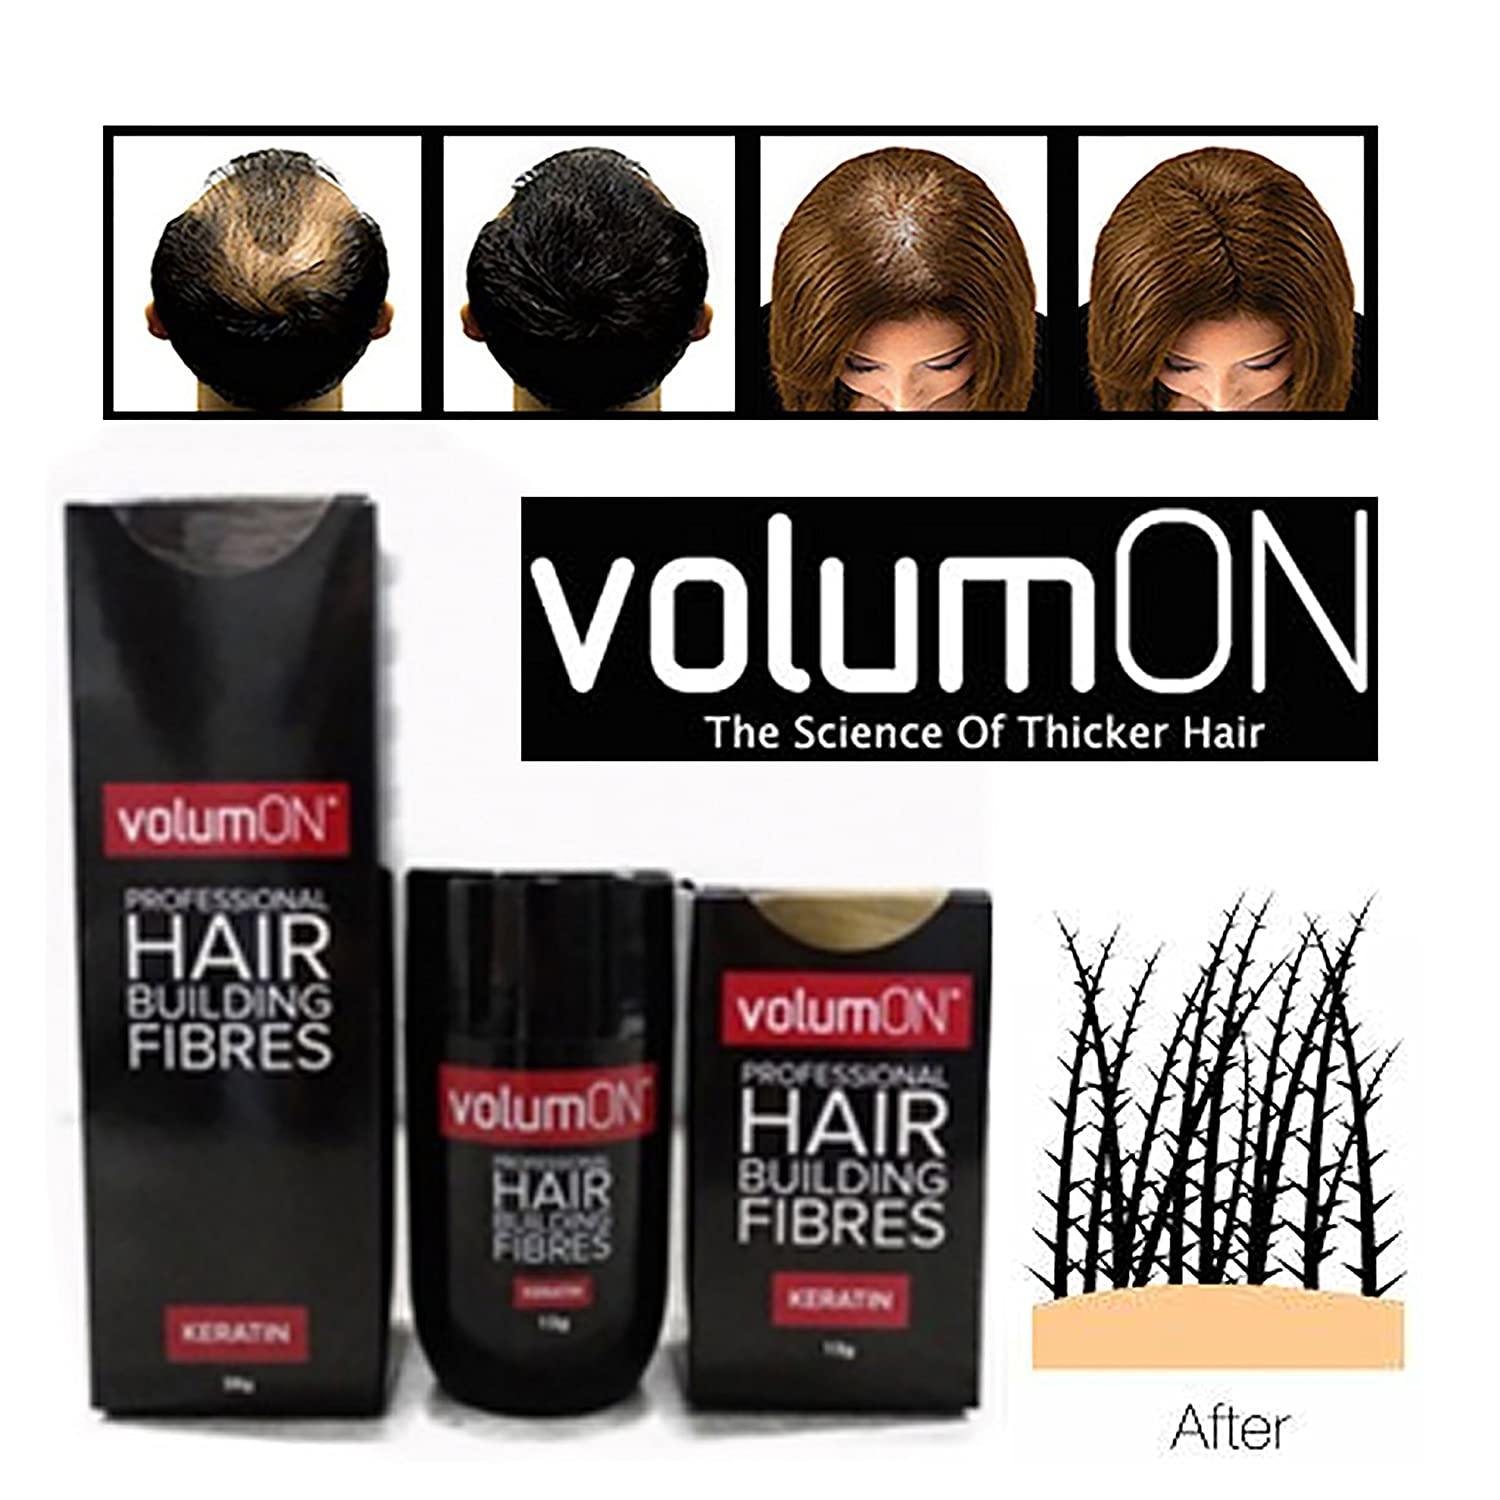 Volumon - Professional Hair Building Fibres - Keratin - Black - 28g: Amazon.es: Belleza